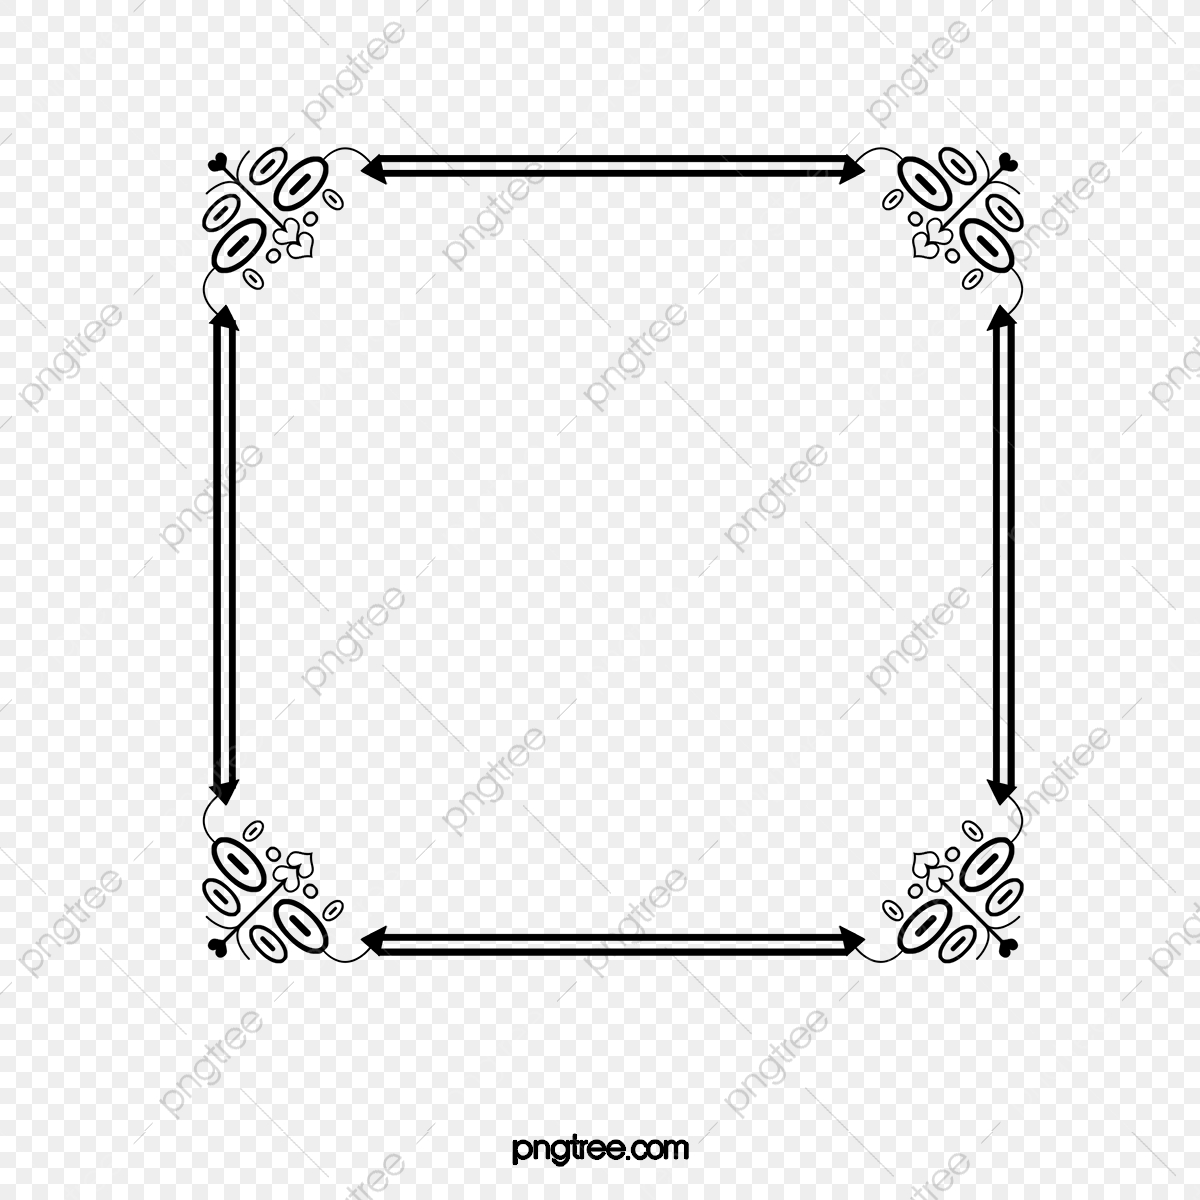 Frame clipart black and white. Pattern photo border png